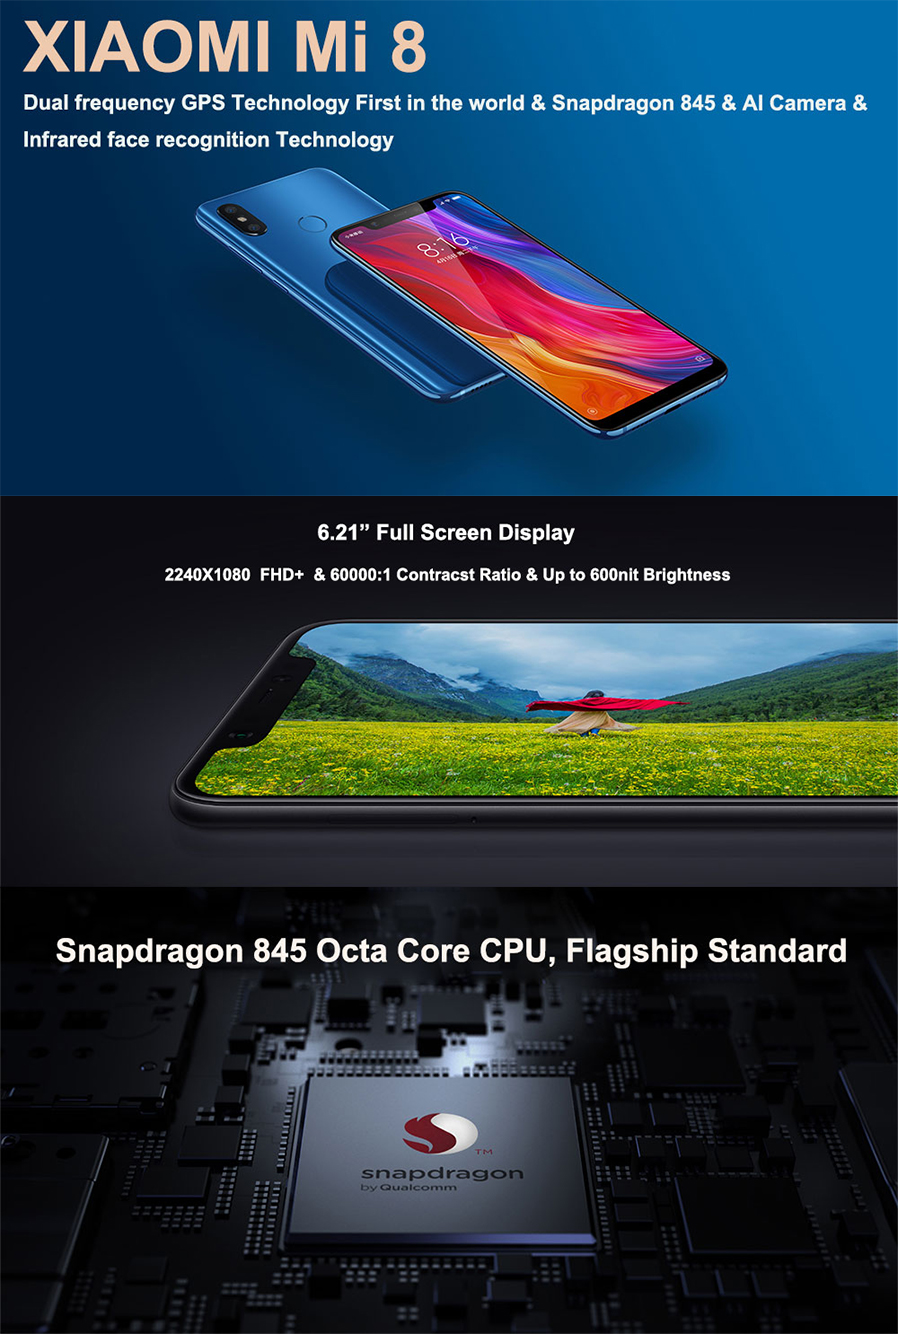 Xiaomi mi 8 Android Phone with 6GB RAM 64GB ROM - Global Version